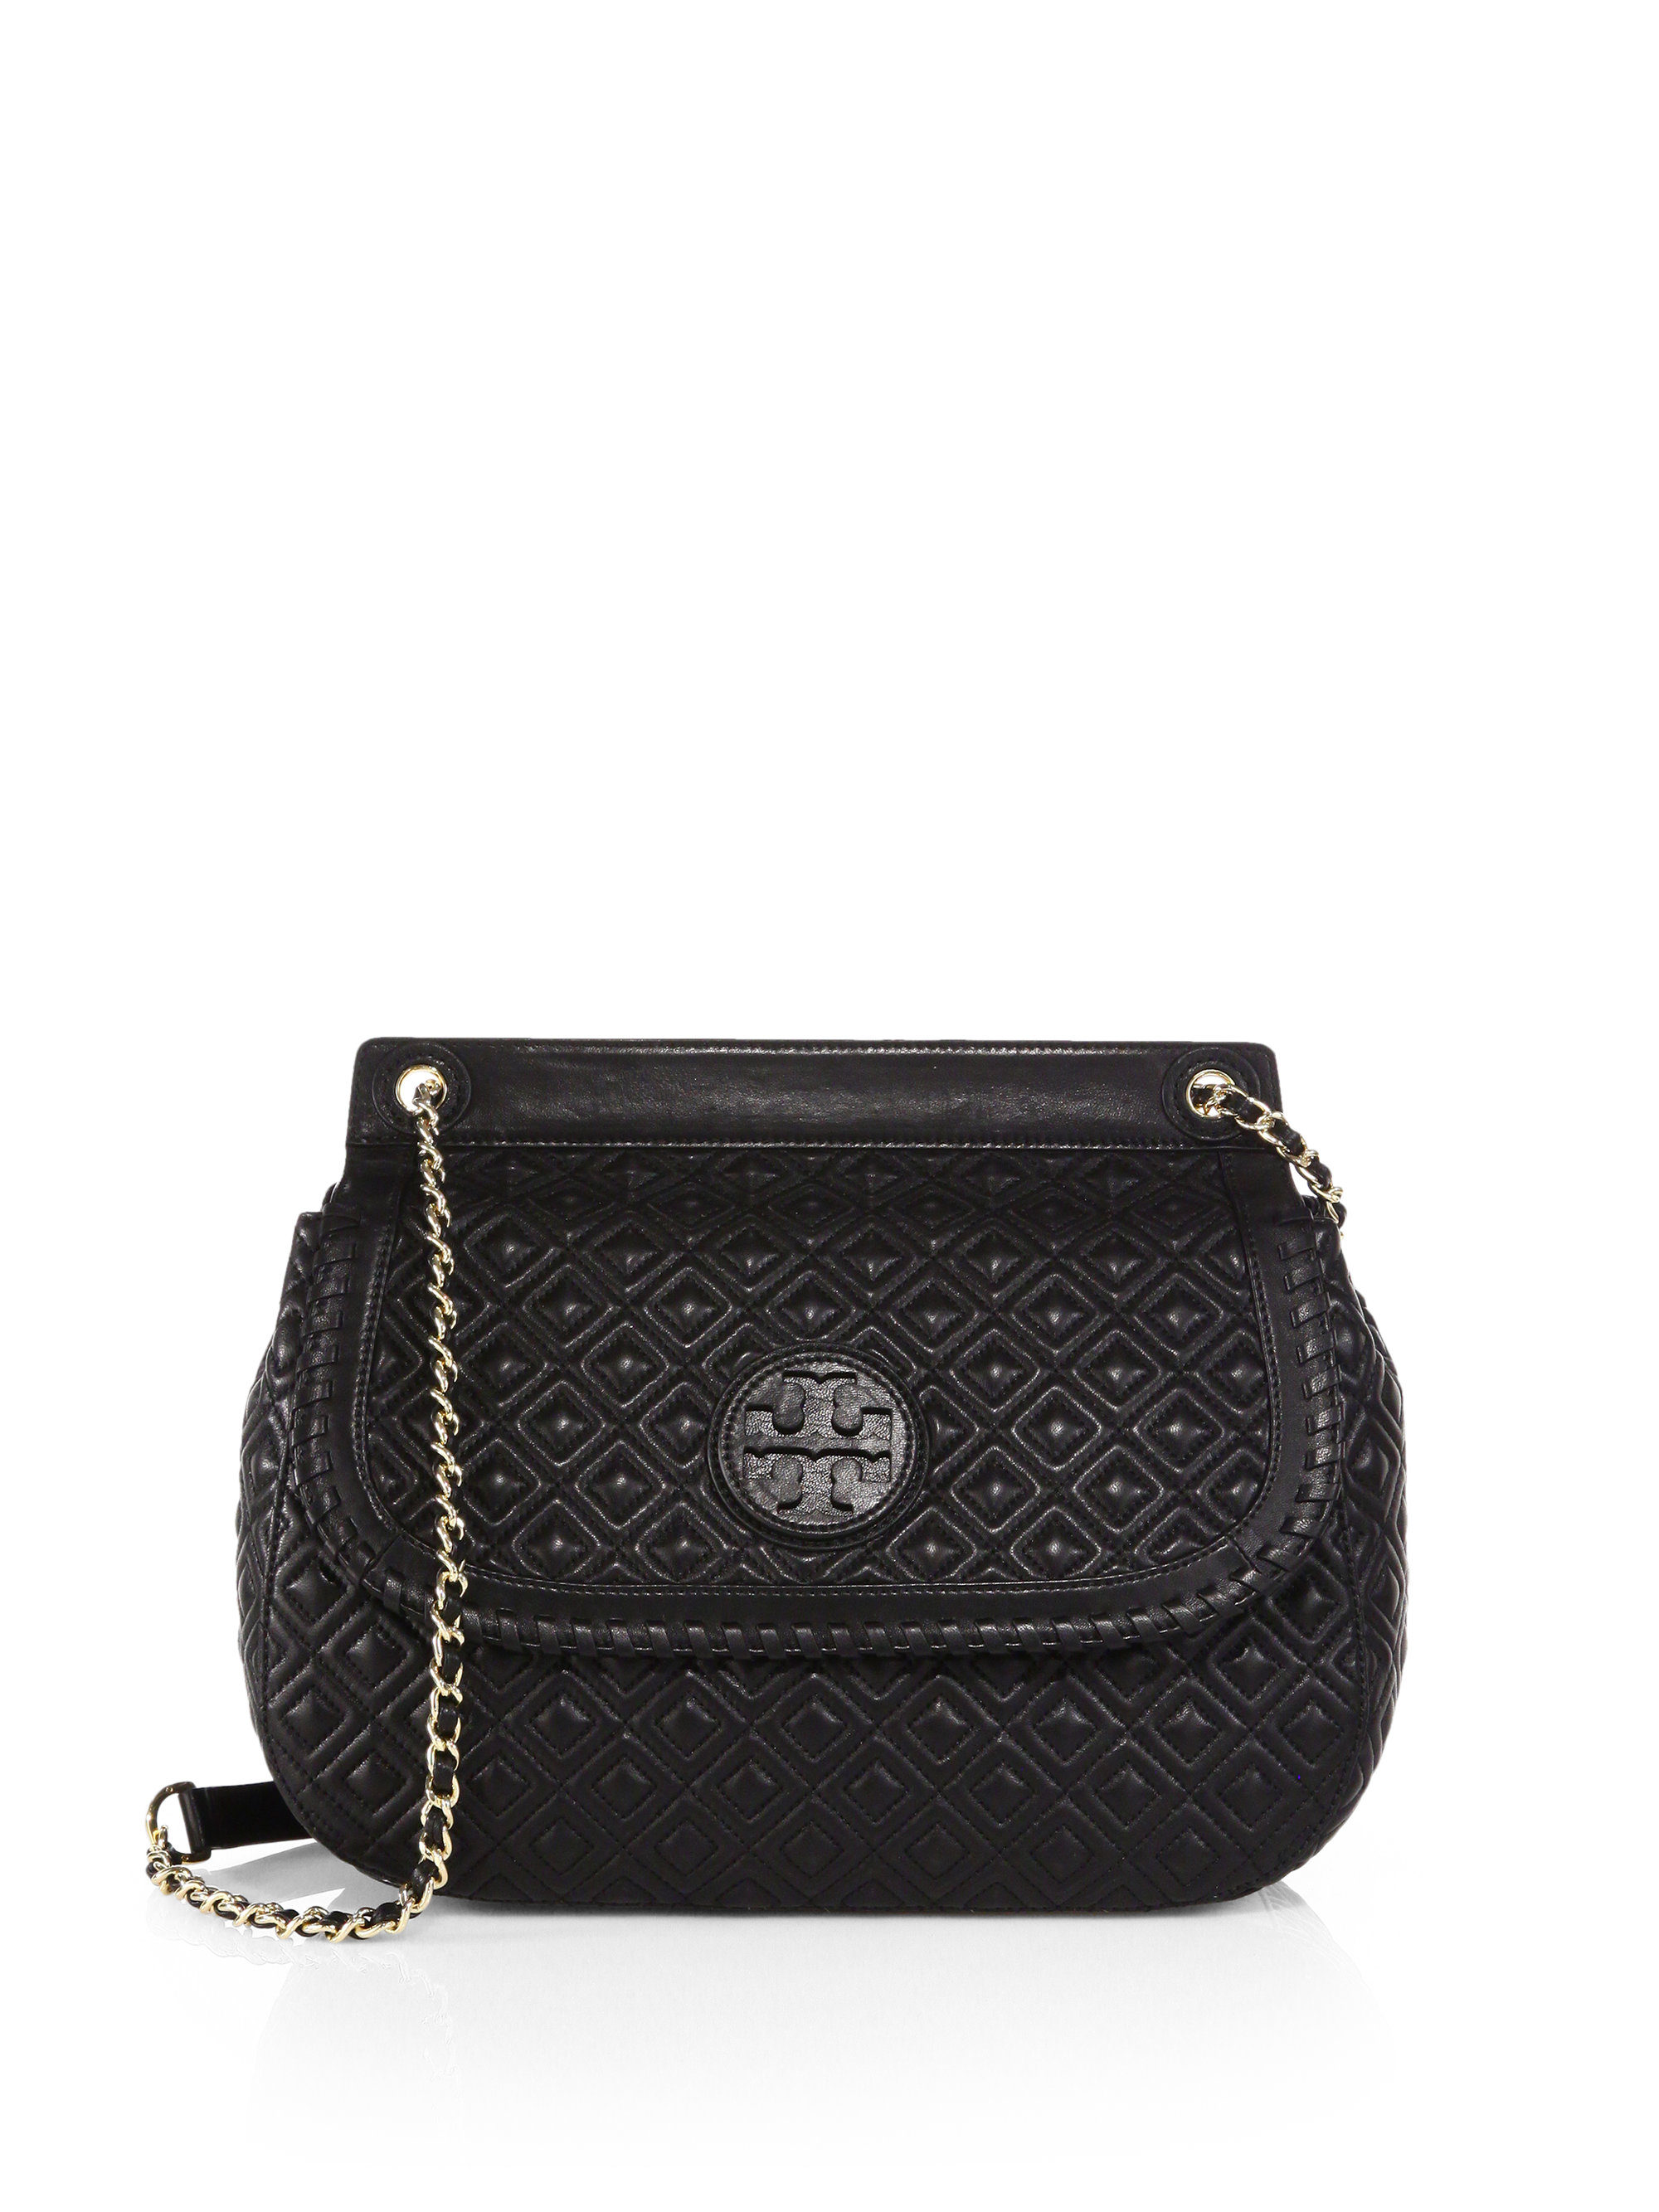 Tory burch Marion Quilted Saddle Shoulder Bag in Black